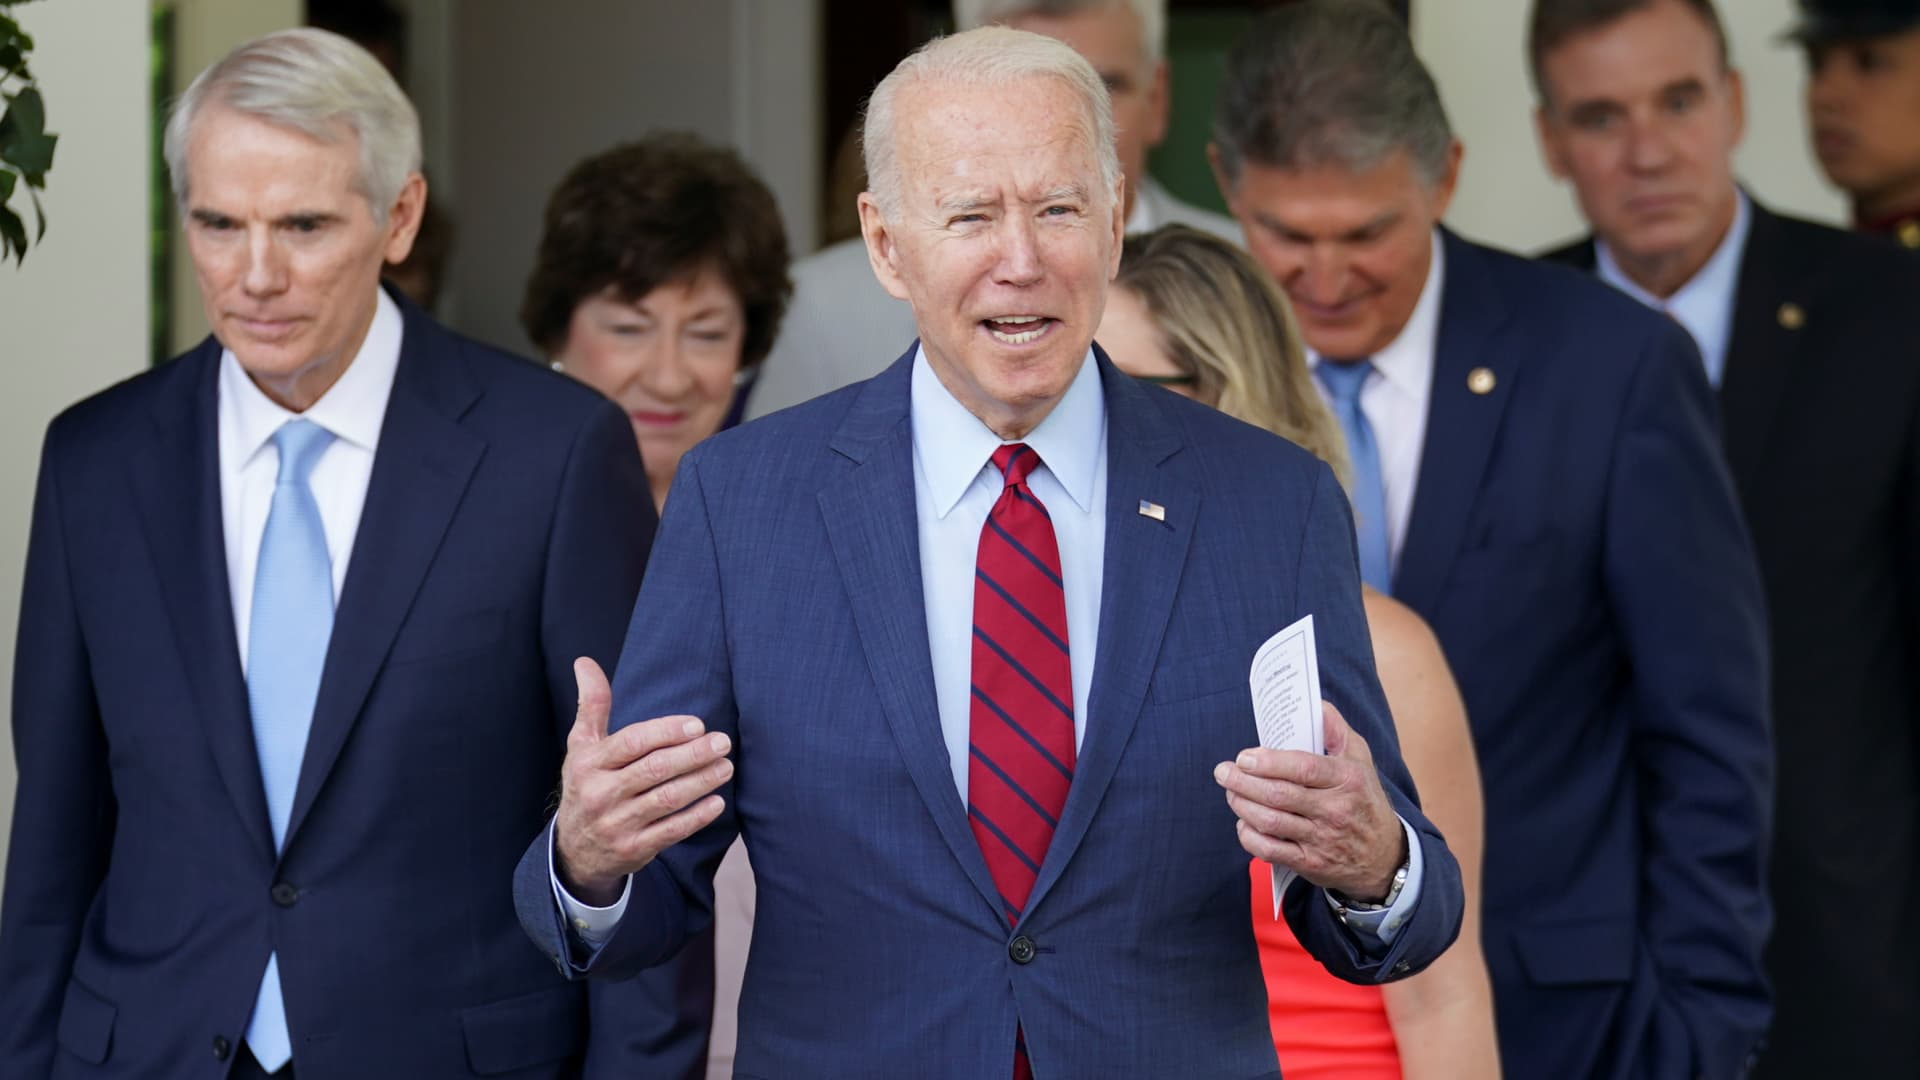 U.S. President Joe Biden reacts as he exits the West Wing of the White House for talking to the media, following a bipartisan meeting with U.S. senators about the proposed framework for the infrastructure bill, at the White House in Washington, June 24, 2021.